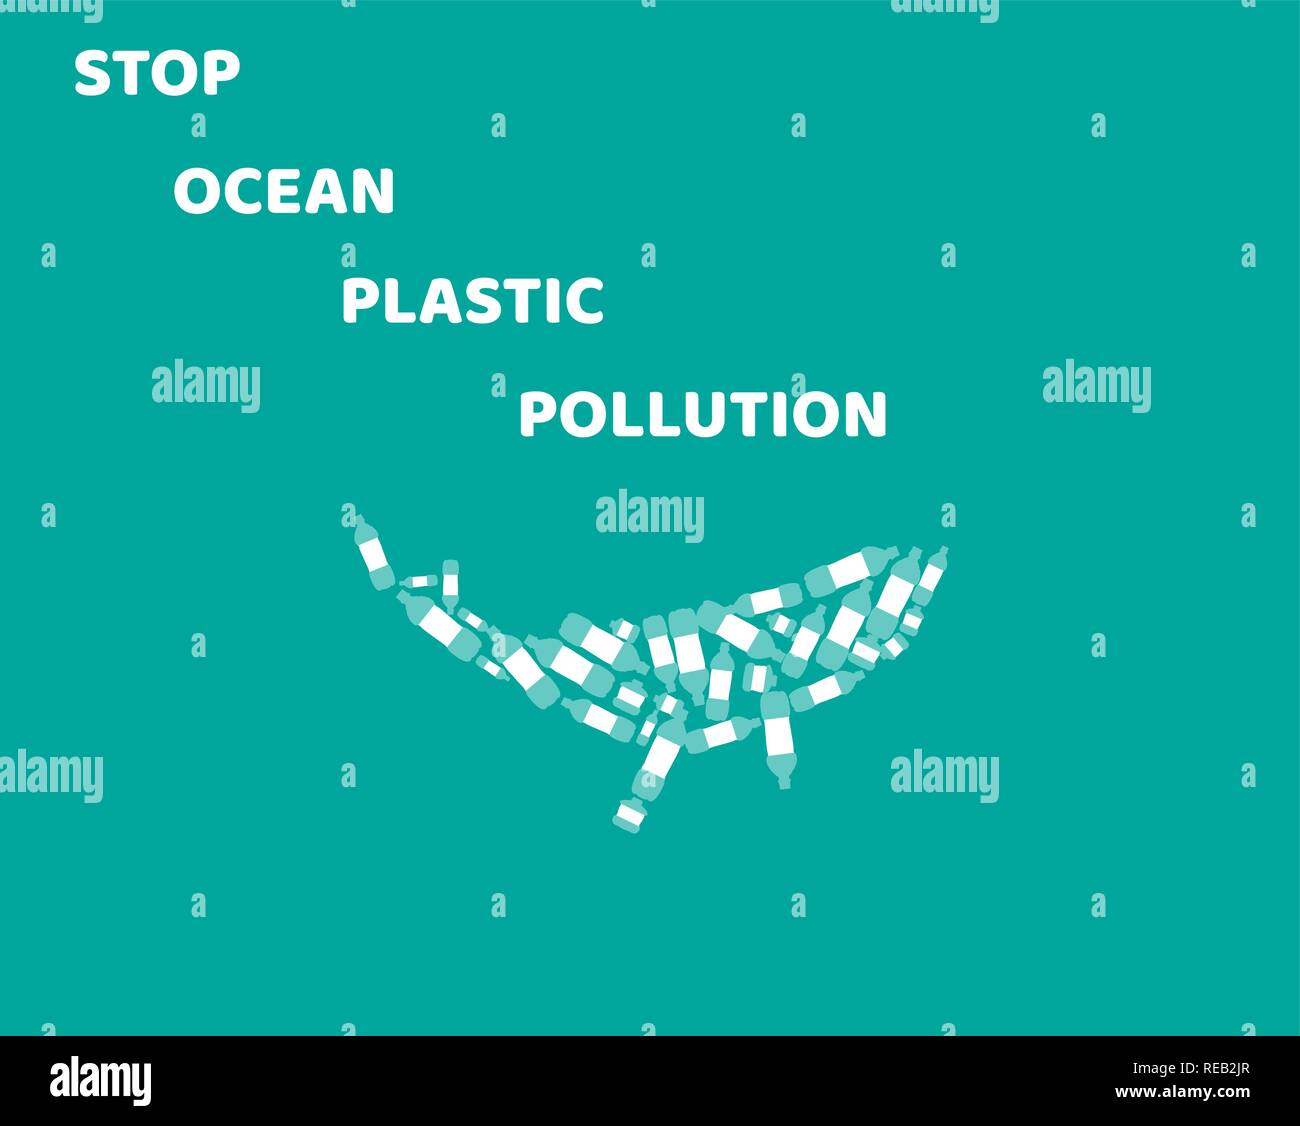 vector illustration of stop ocean plastic pollution. ecology, Earth Day. - Stock Vector